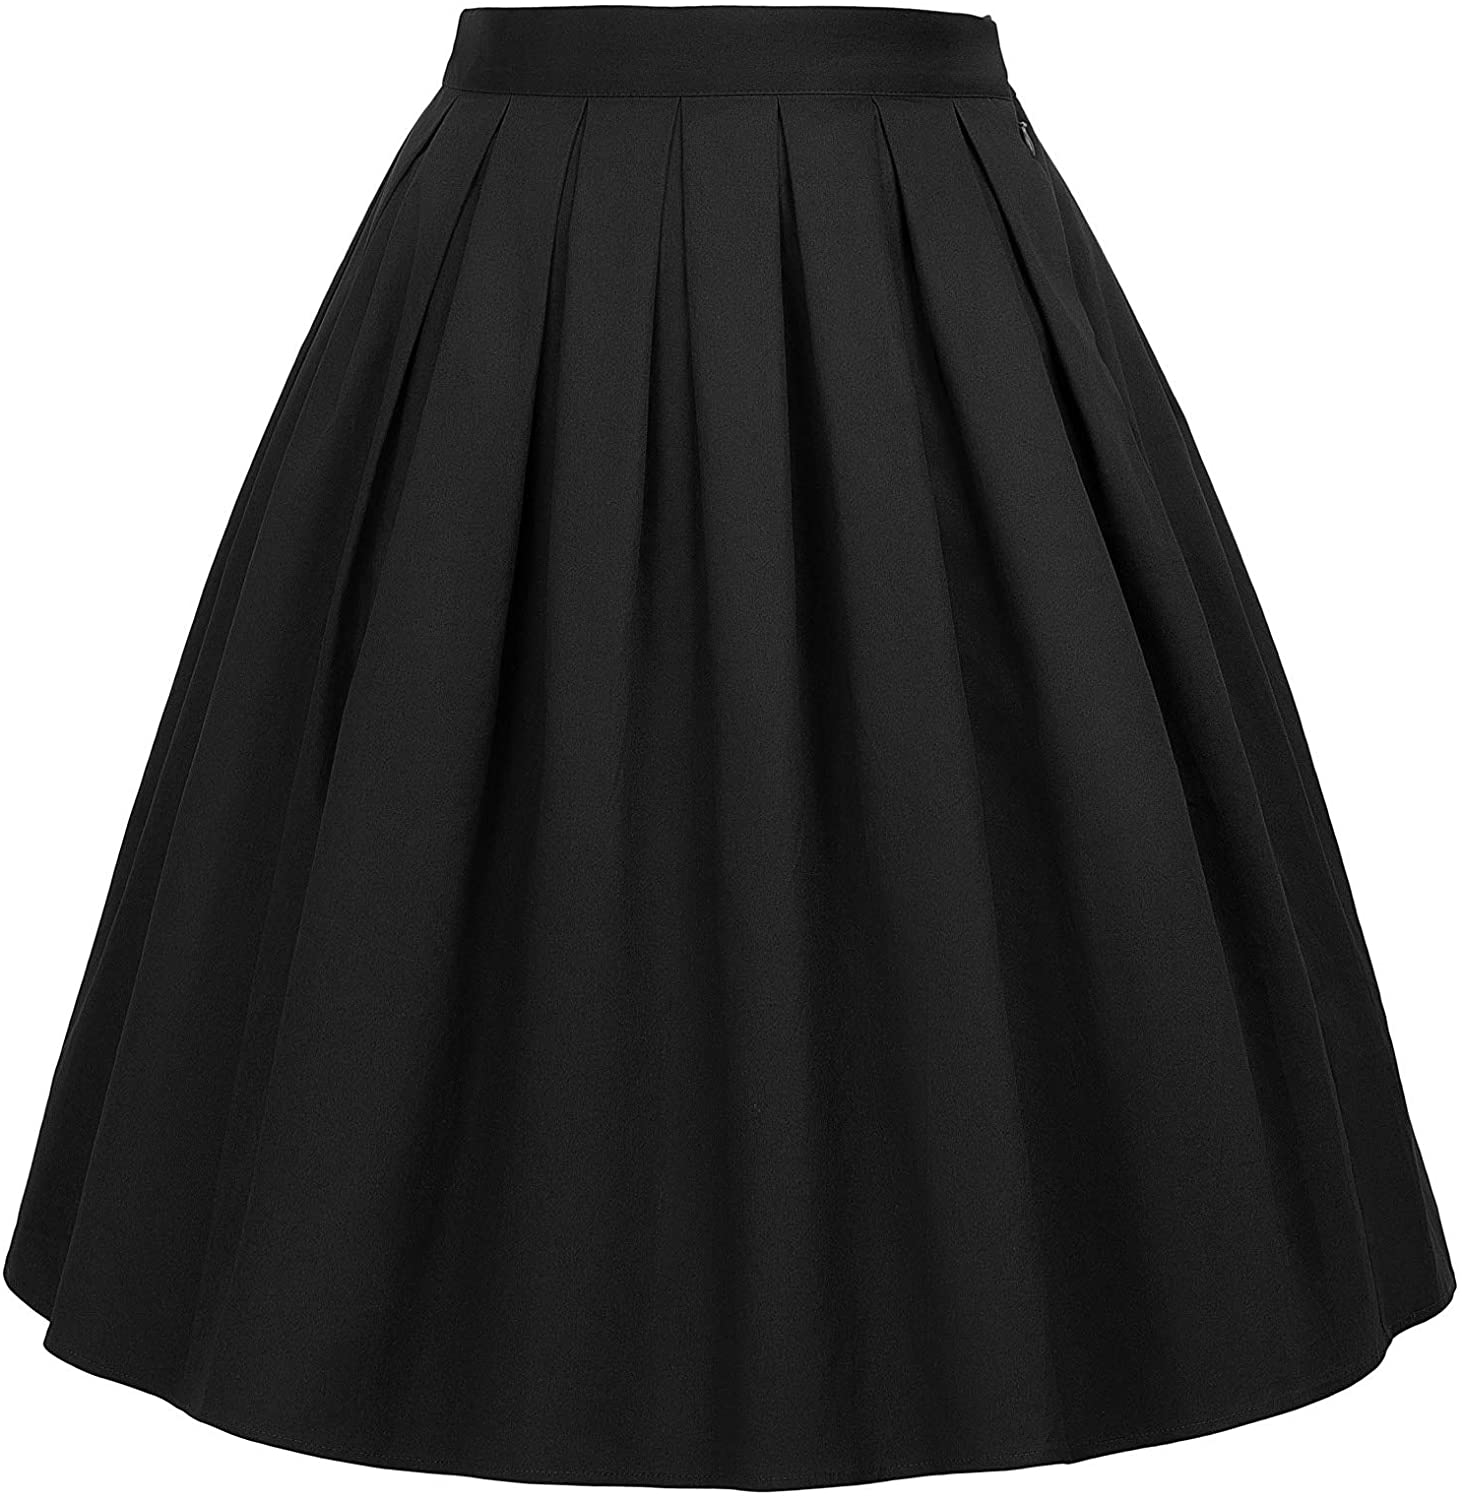 CL6294 Women's Rockabilly Skirt A Line Vintage Retro Skirt Swing Skirt